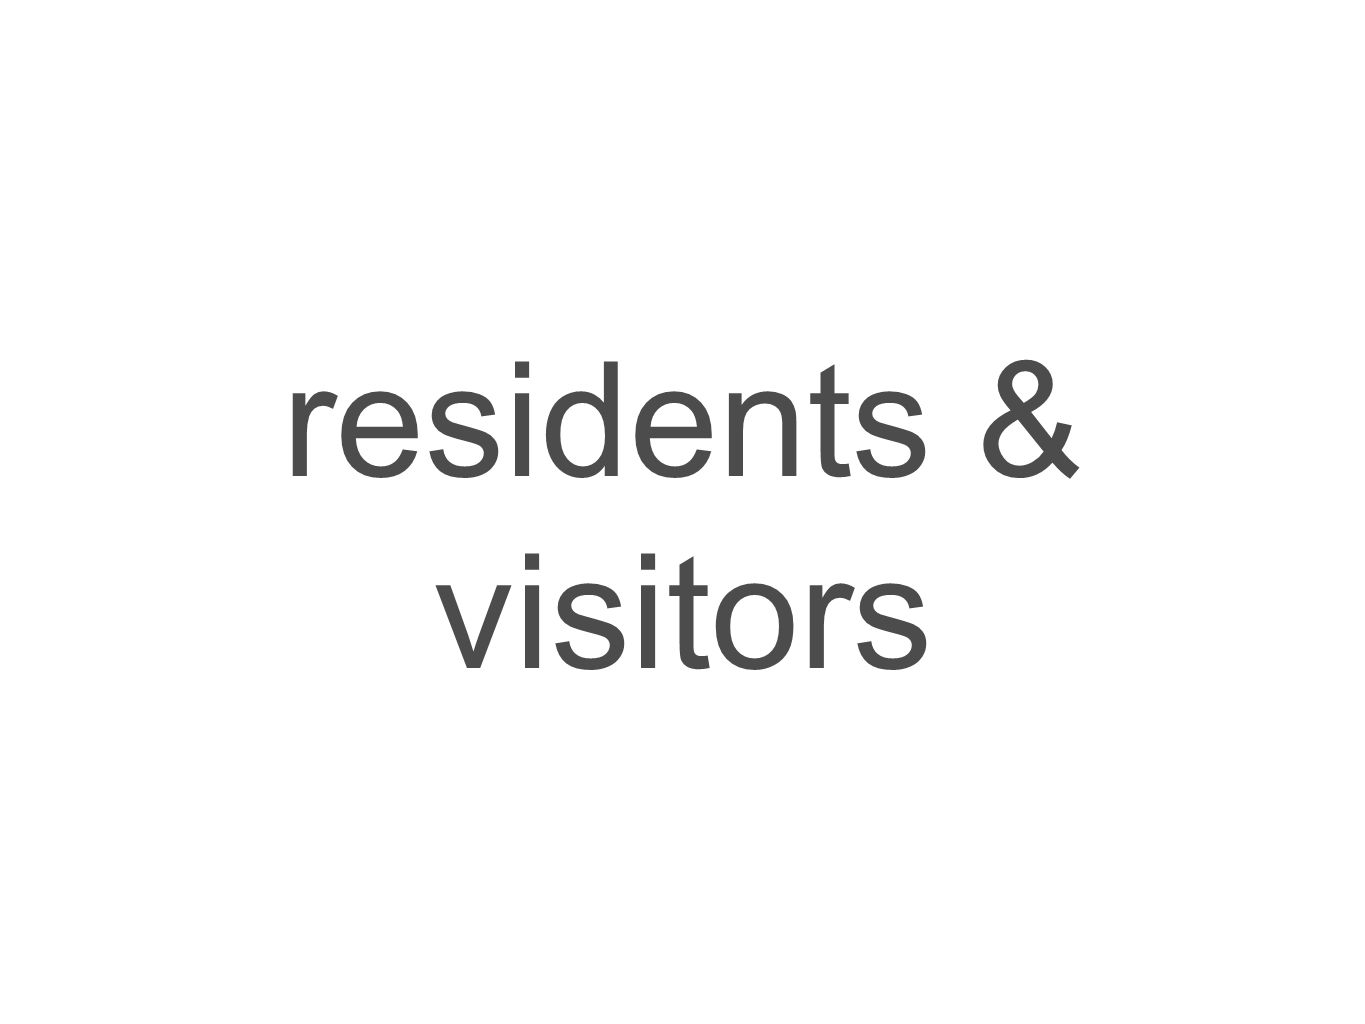 residents & visitors